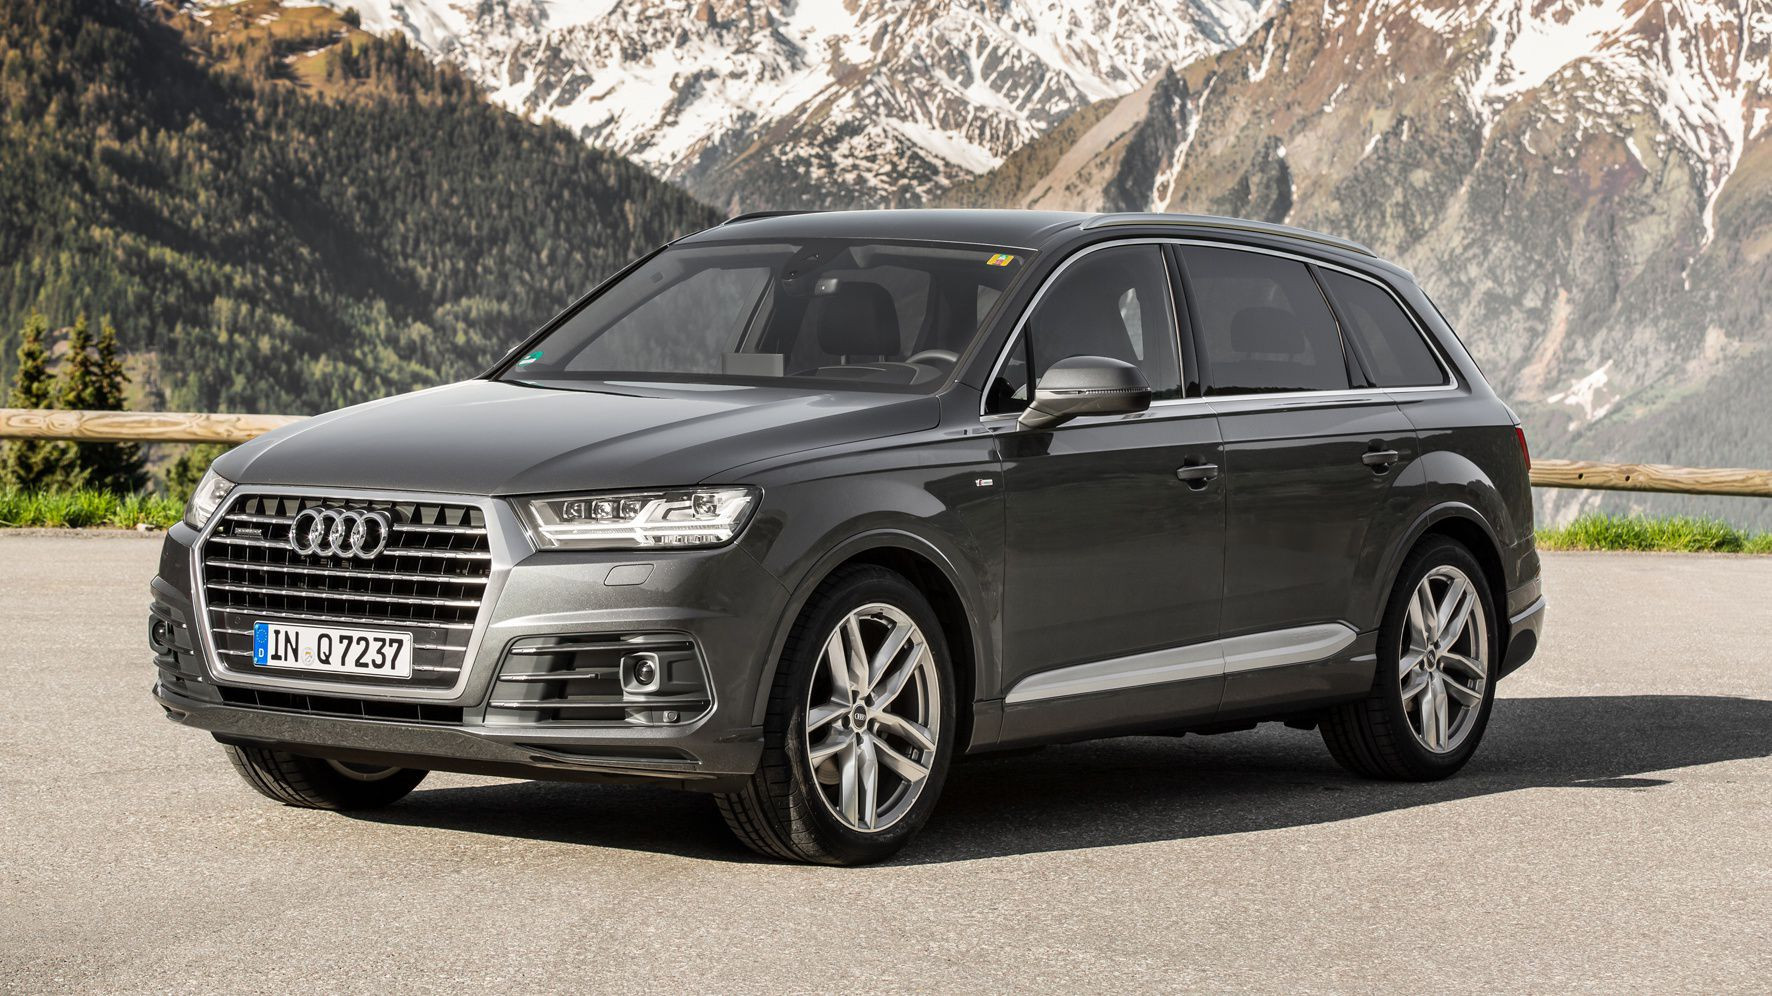 Audi Q7 parked in front of a snowy mountain